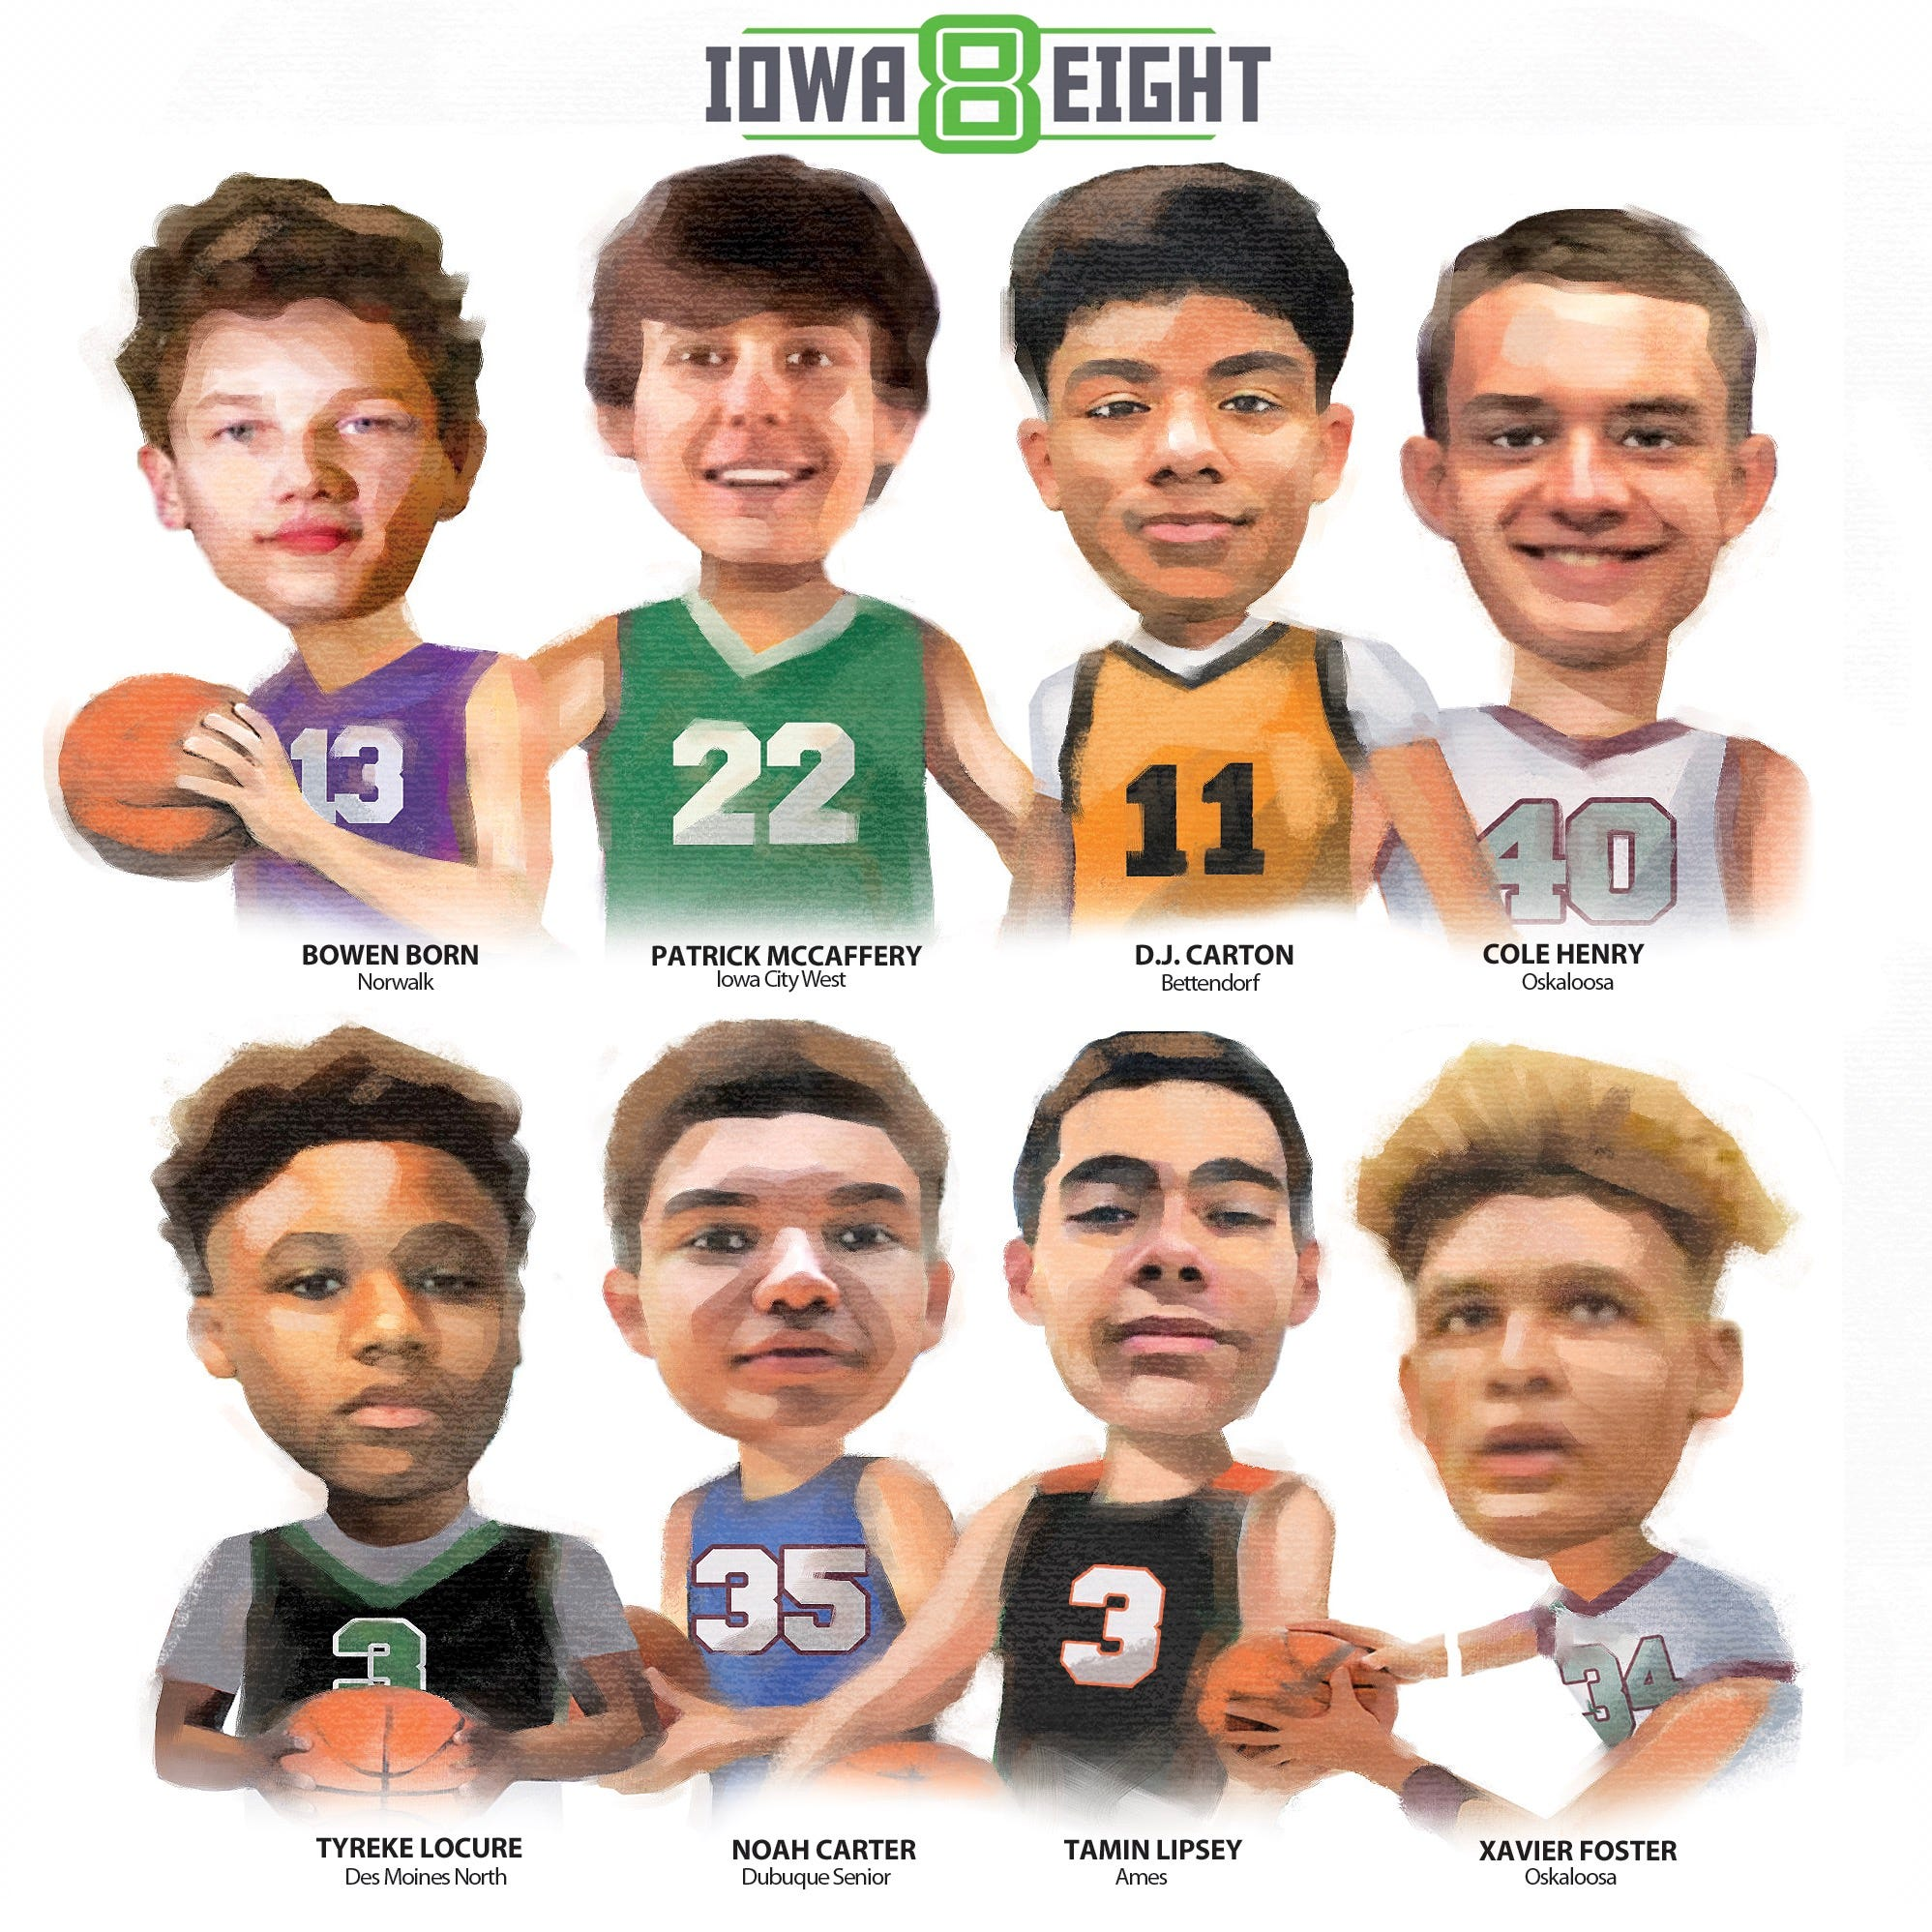 Iowa Eight: Introducing the state's top boys' basketball prospects of 2018-19